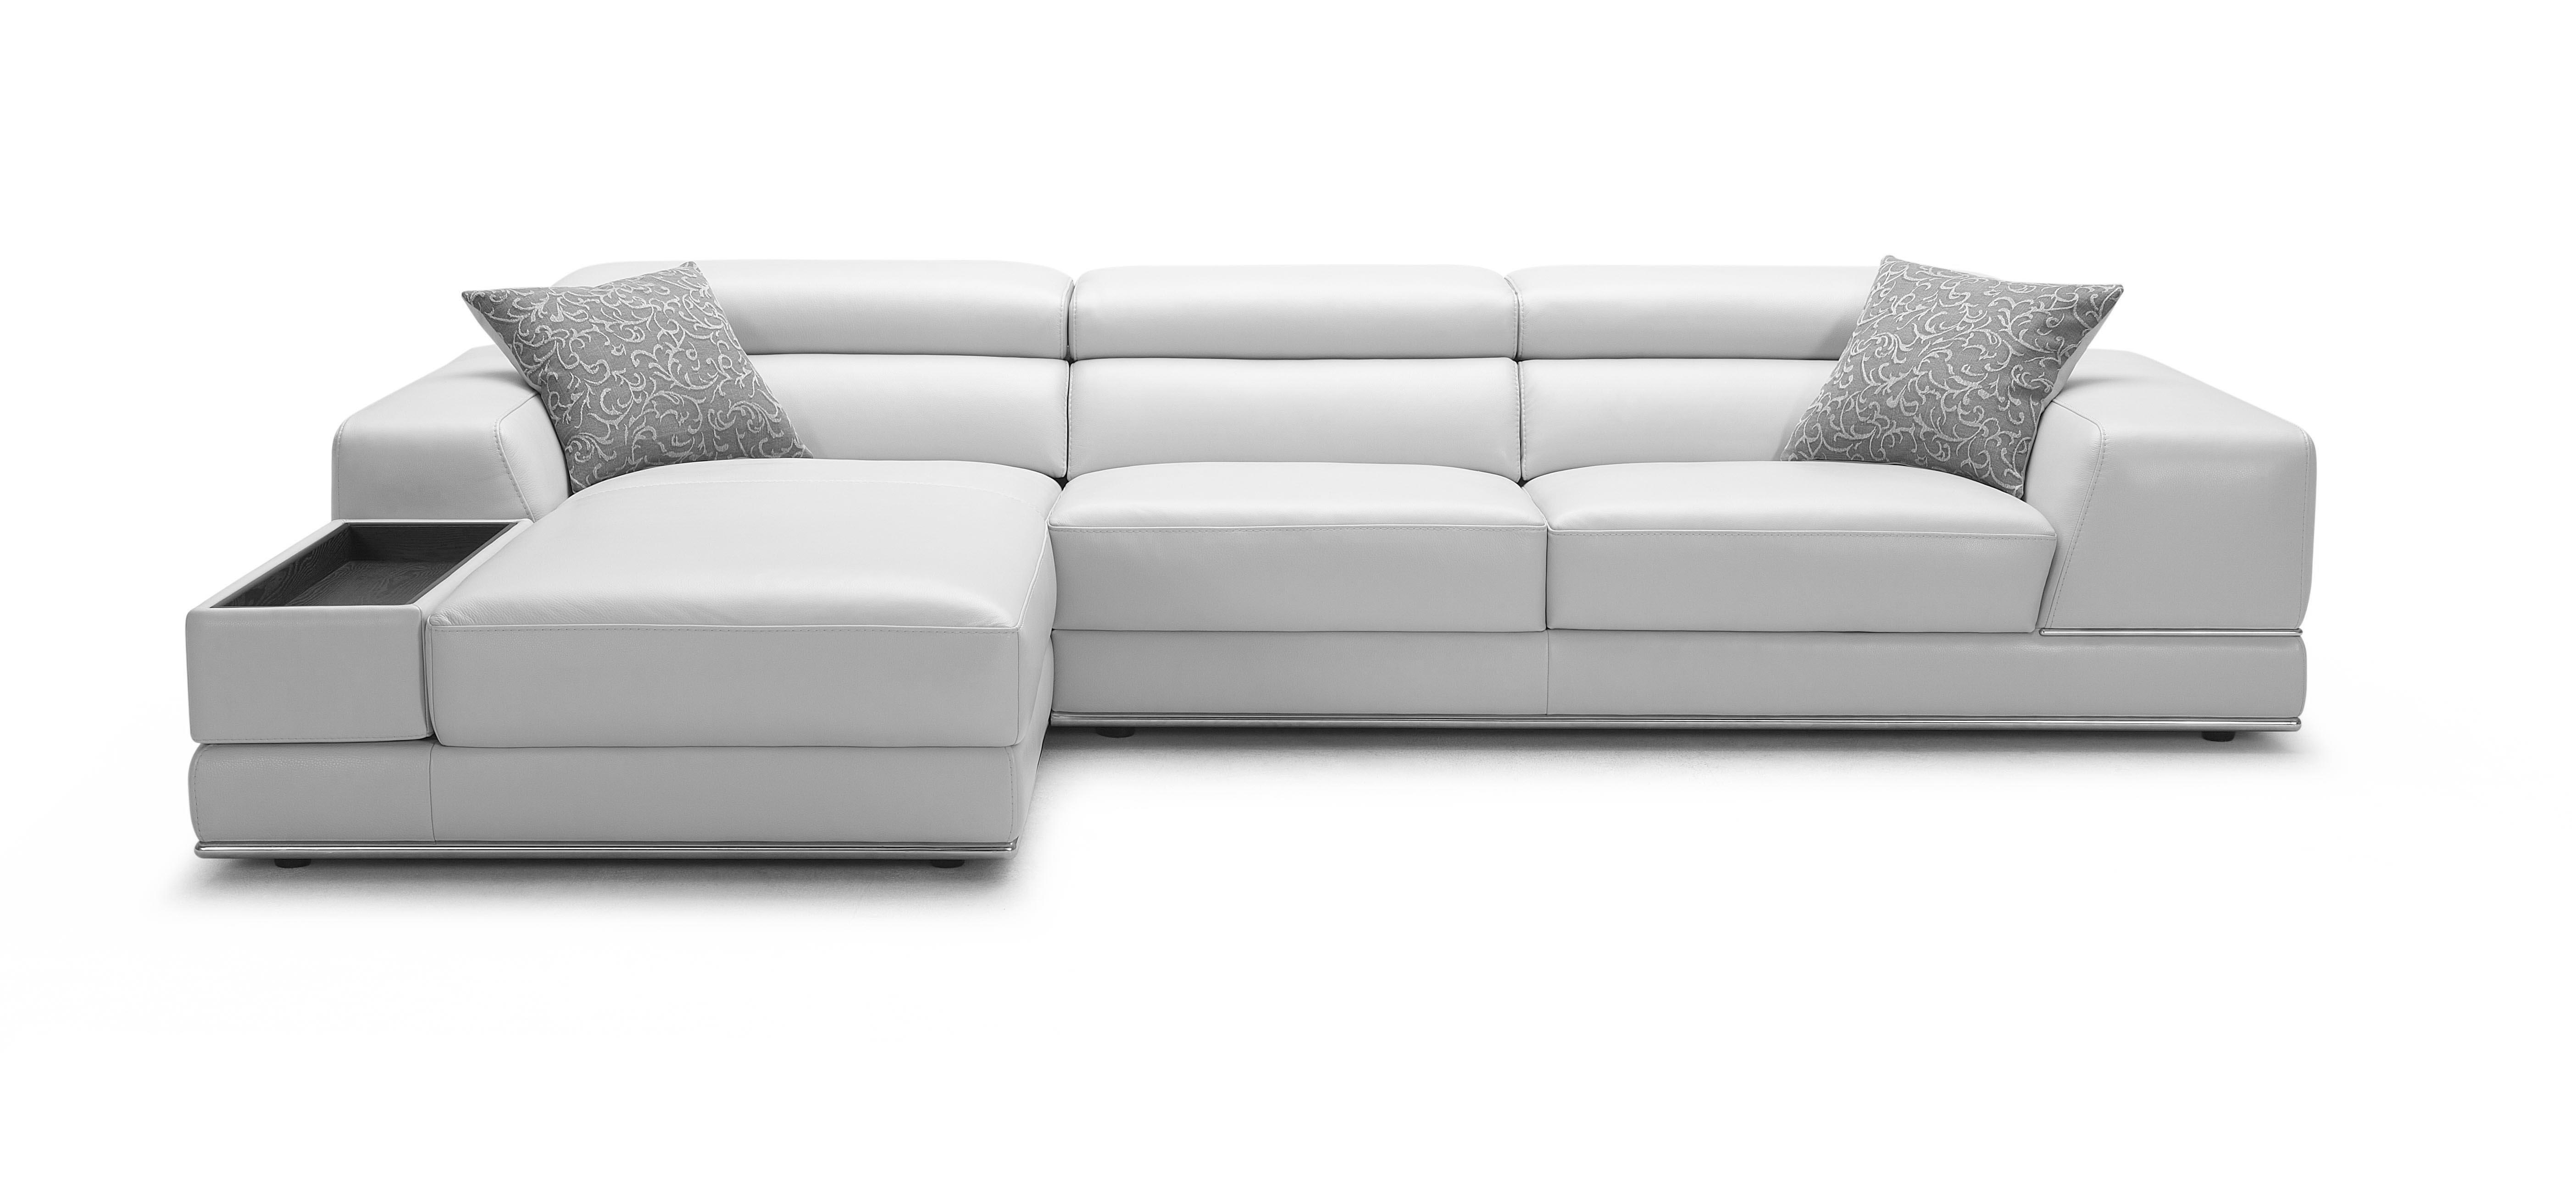 Greensboro Nc Sectional Sofas For Well Liked Furniture : Sectional Sofa Greensboro Nc Sectional Sofa Chaise (View 11 of 20)